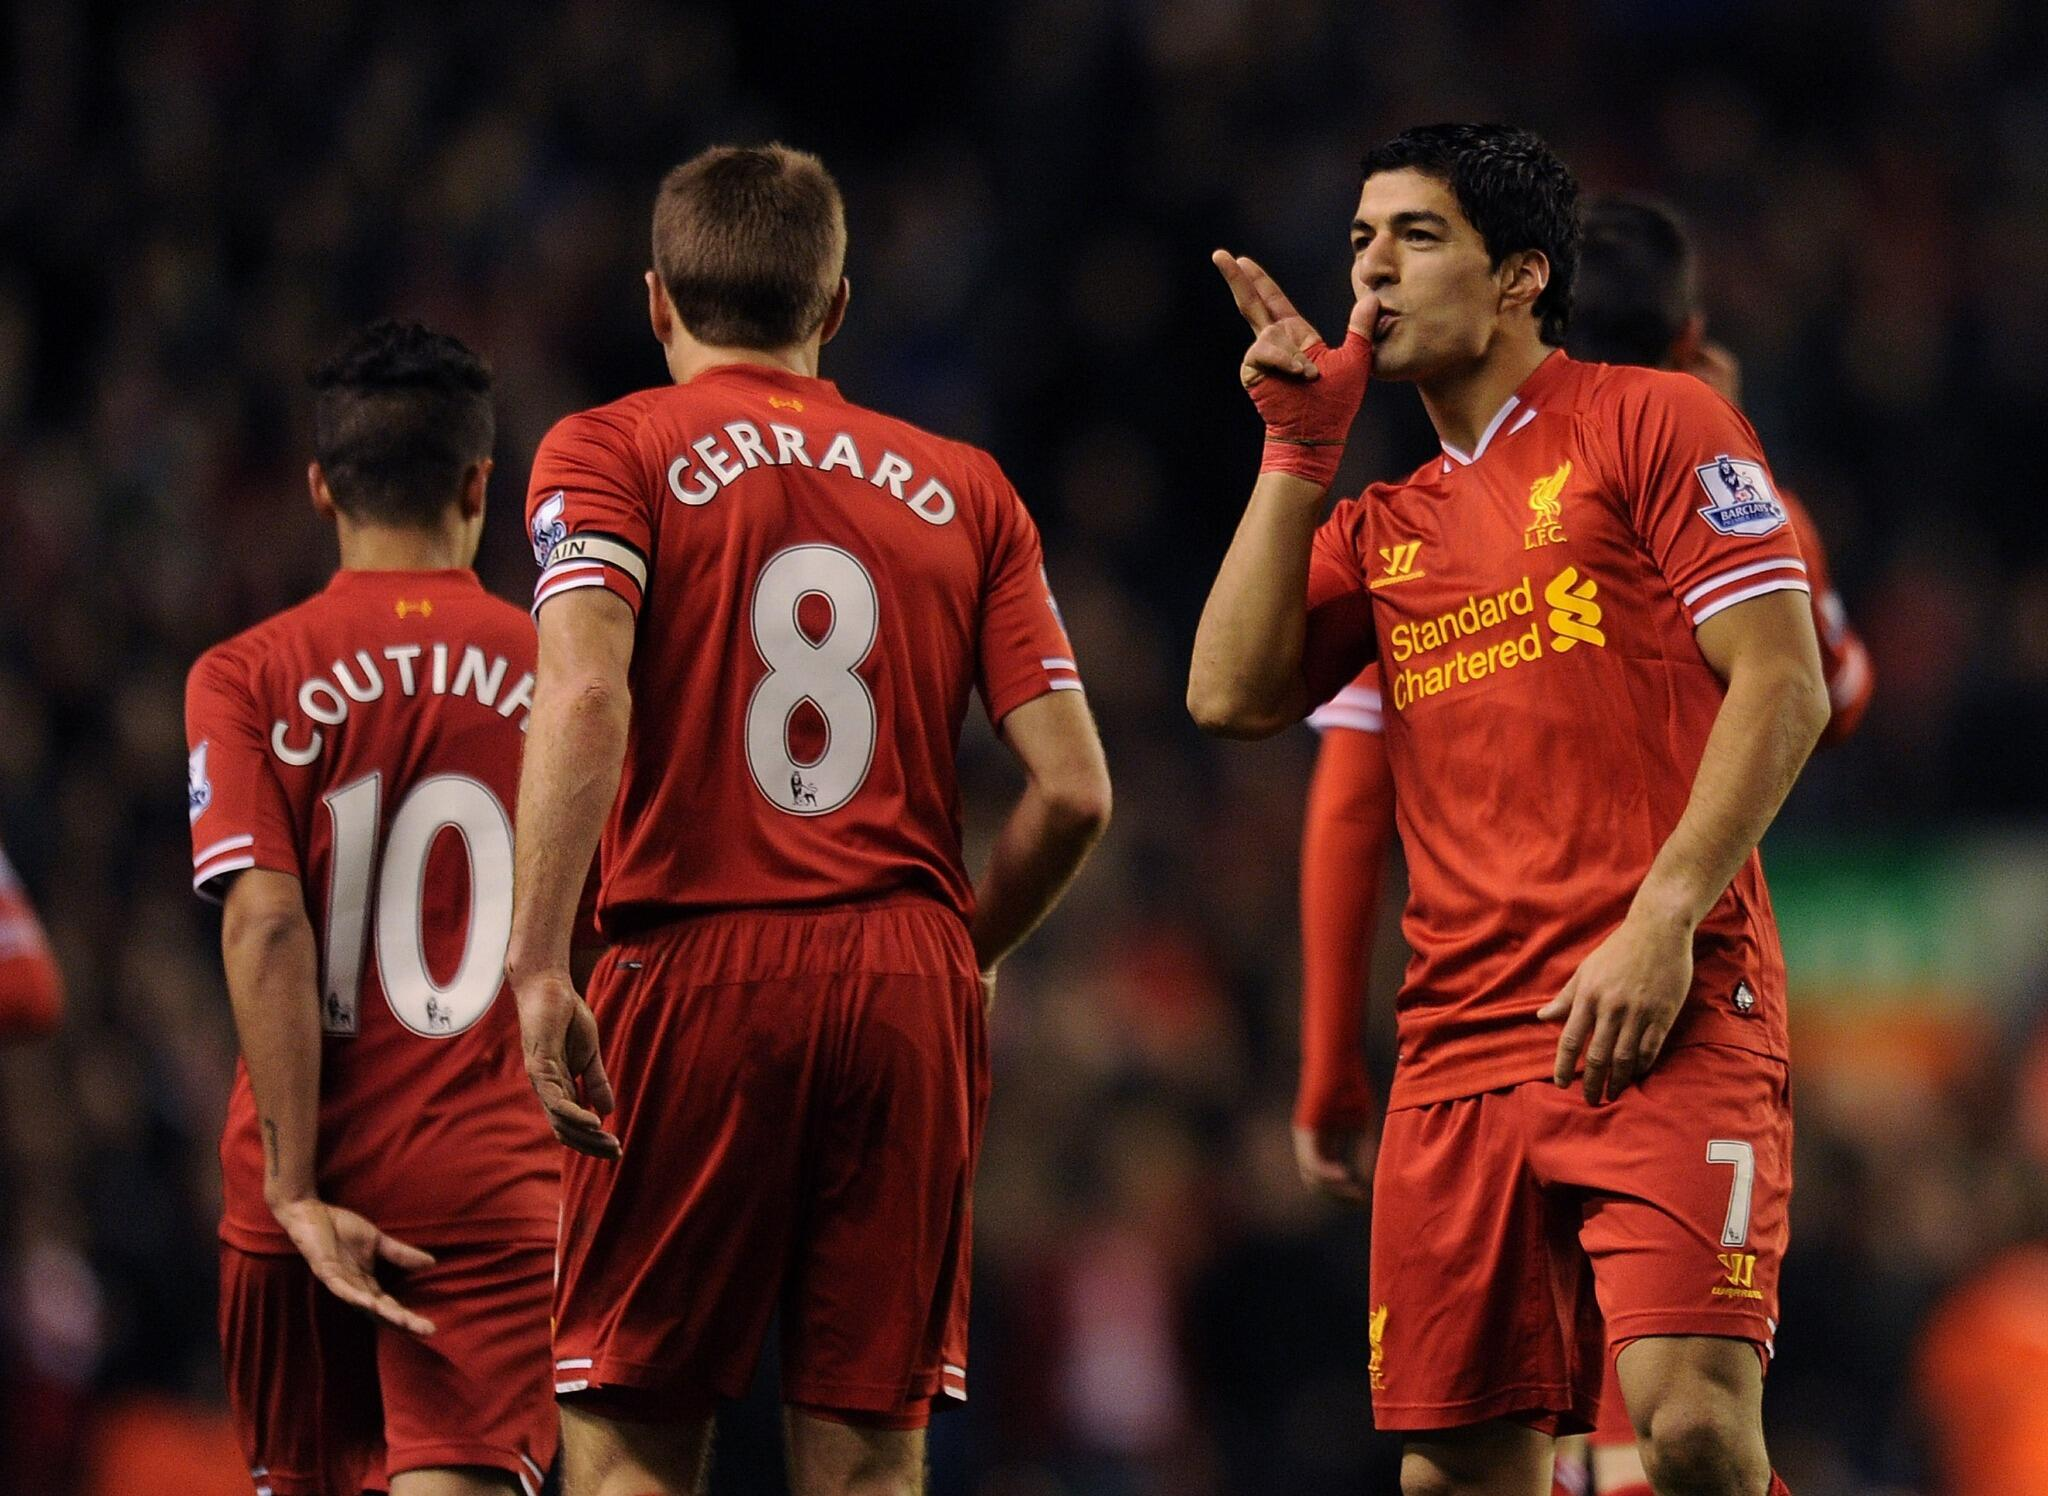 Luis Suarez tells Marca after 4 goal haul v Norwich: I will stay at Liverpool until the end of the season